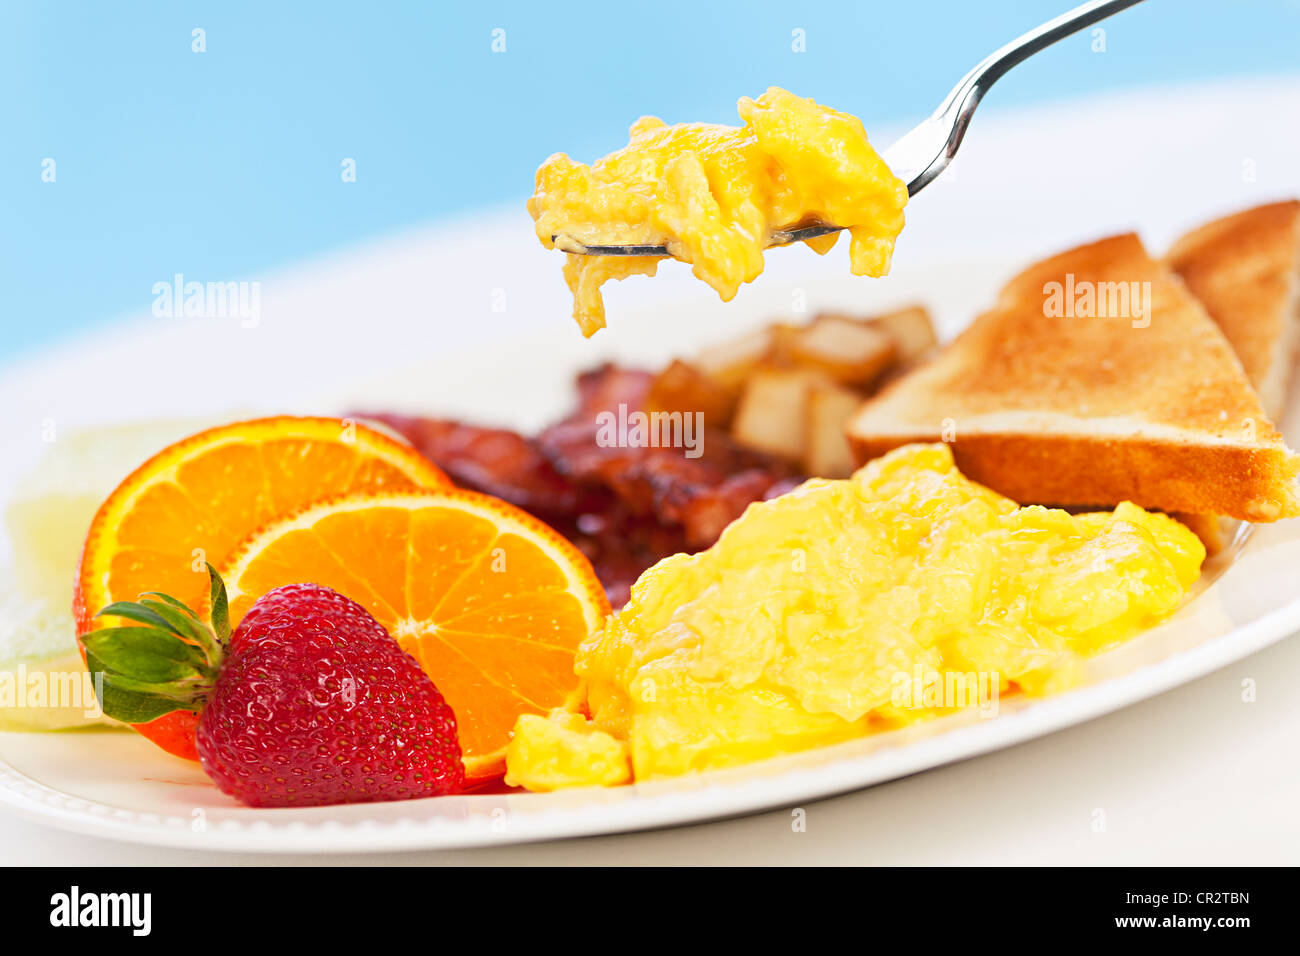 how to eat scrambled eggs on toast